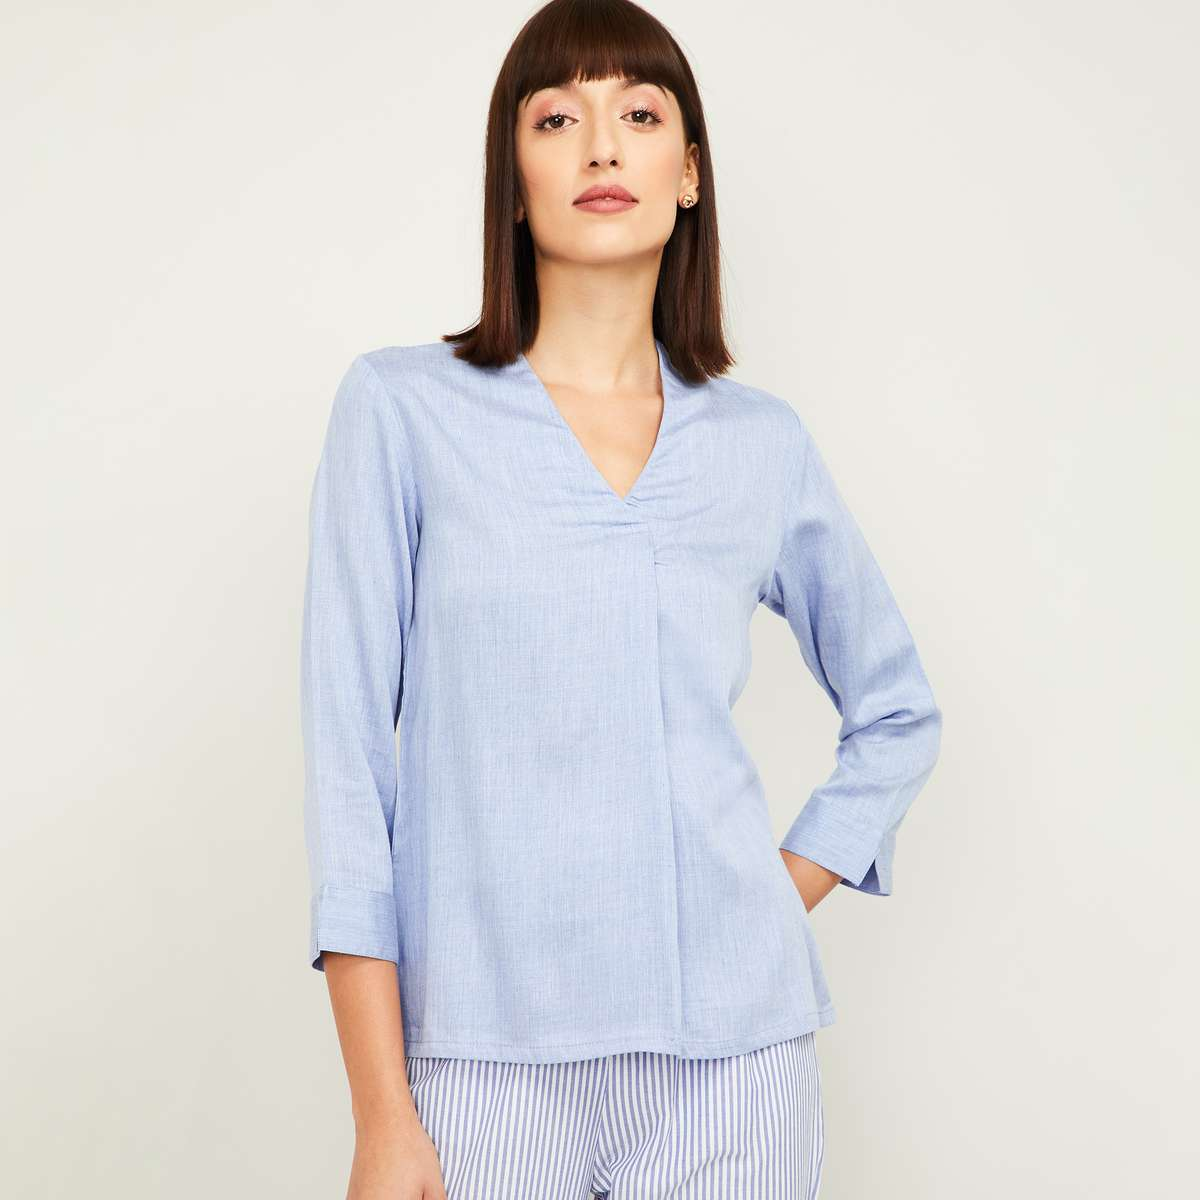 1.AND Women Solid V-neck Top